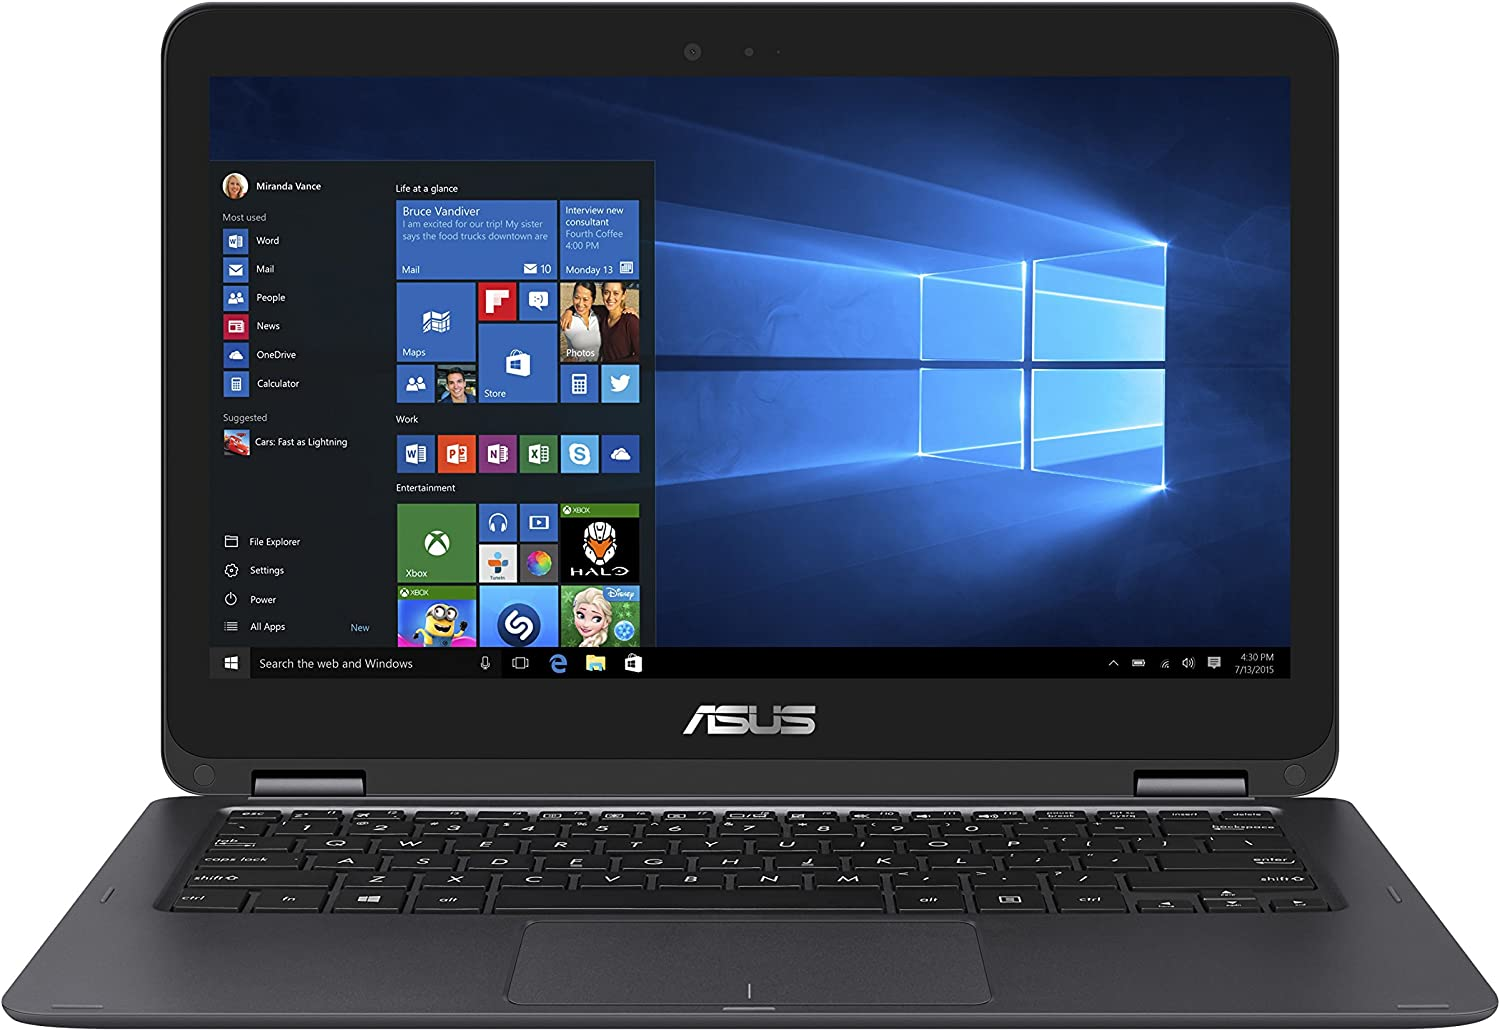 "ASUS ZenBook Flip UX360CA-UHM1T 13.3"" 2-in 1 Laptop, Touchscreen, Intel Core m3-7Y30 Processor, 8GB RAM, 256GB Solid State Drive, Windows 10"